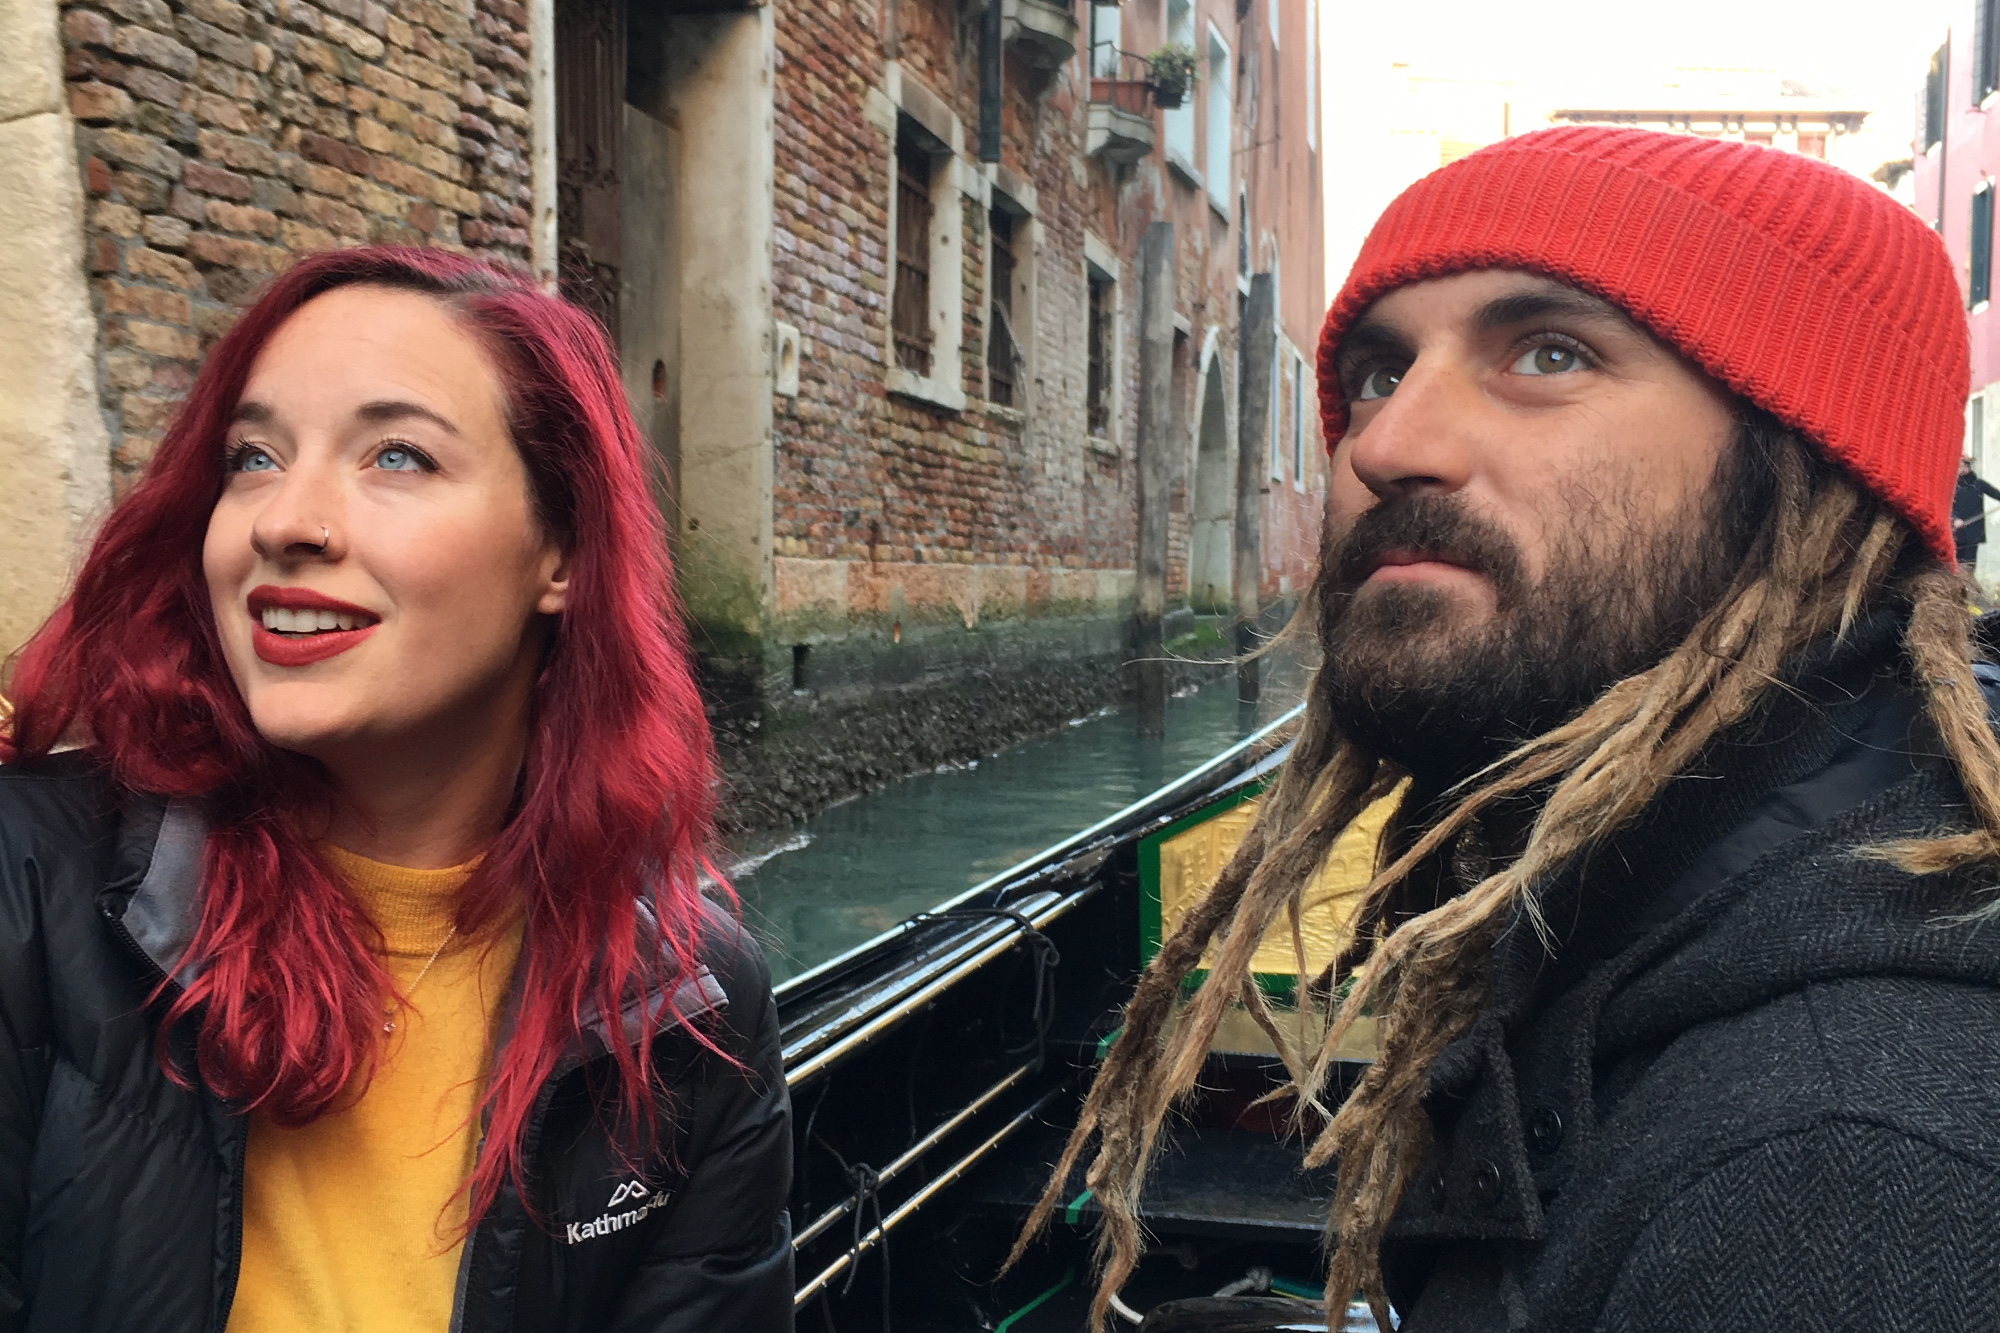 Kelsey and Peter enjoying a gondola ride through Venice's canals